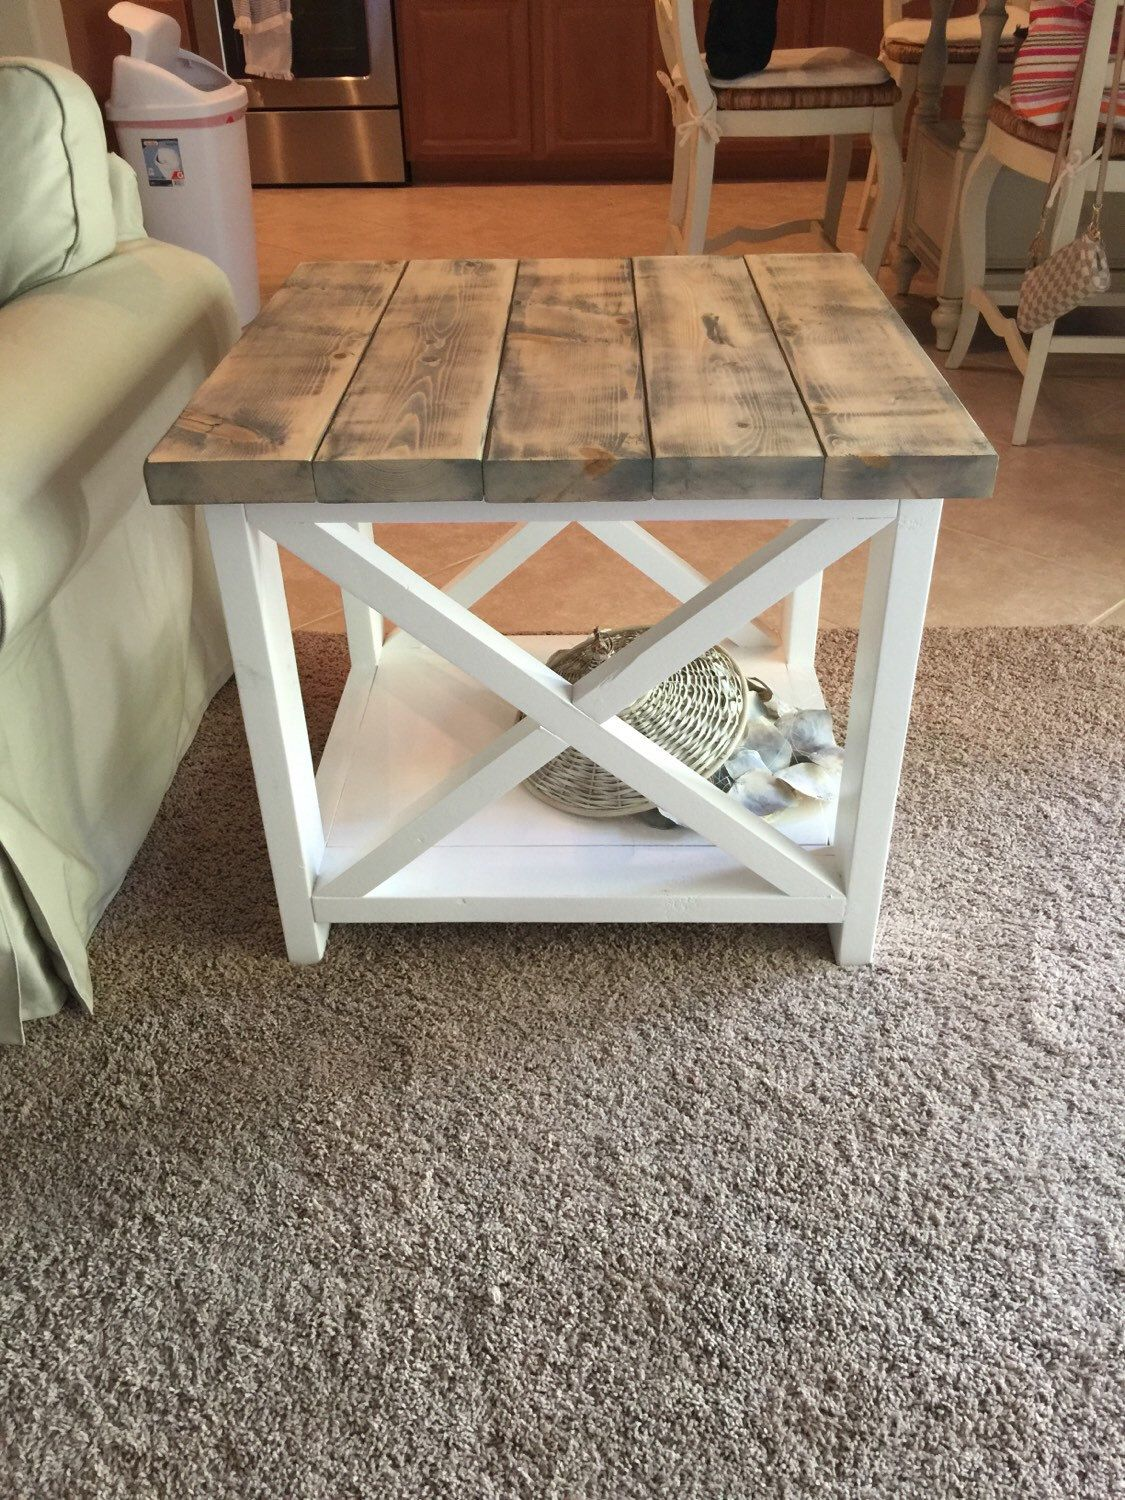 pin sarah wazdatskey places think yes farmhouse home decor end tables best table design ideas give aesthetic room white barn wood stanley furniture desk and hutch ethan allen made